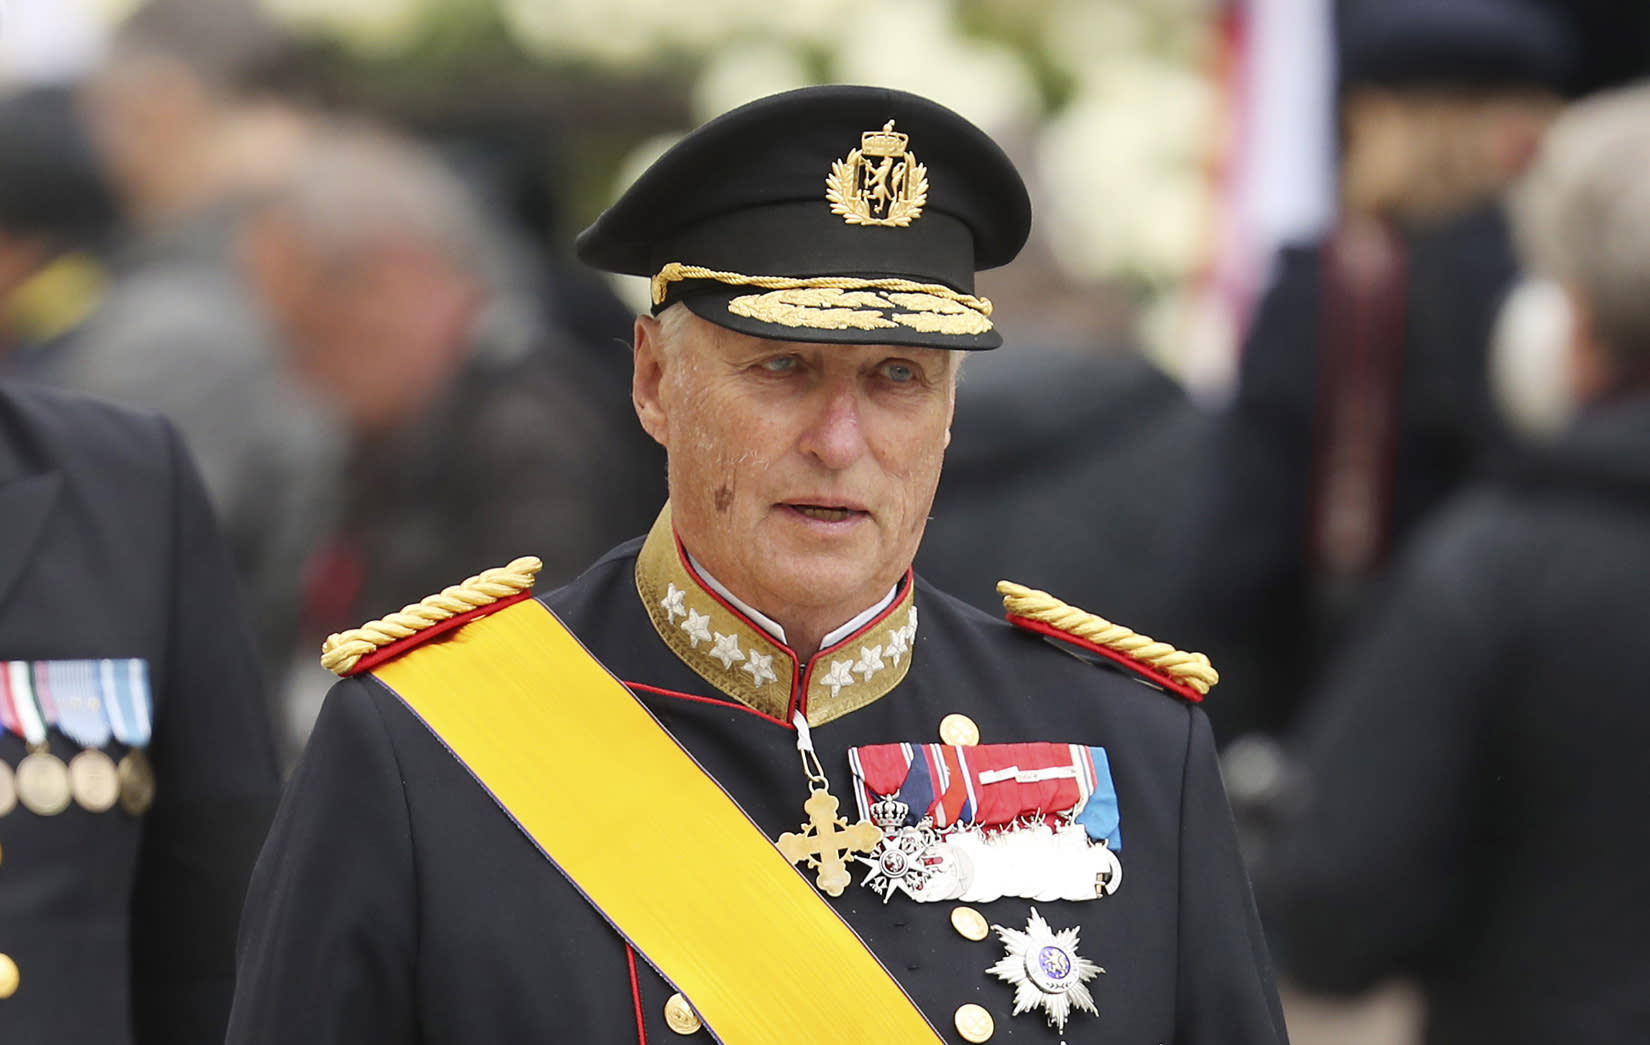 Norway's aging king discharged after heart surgery